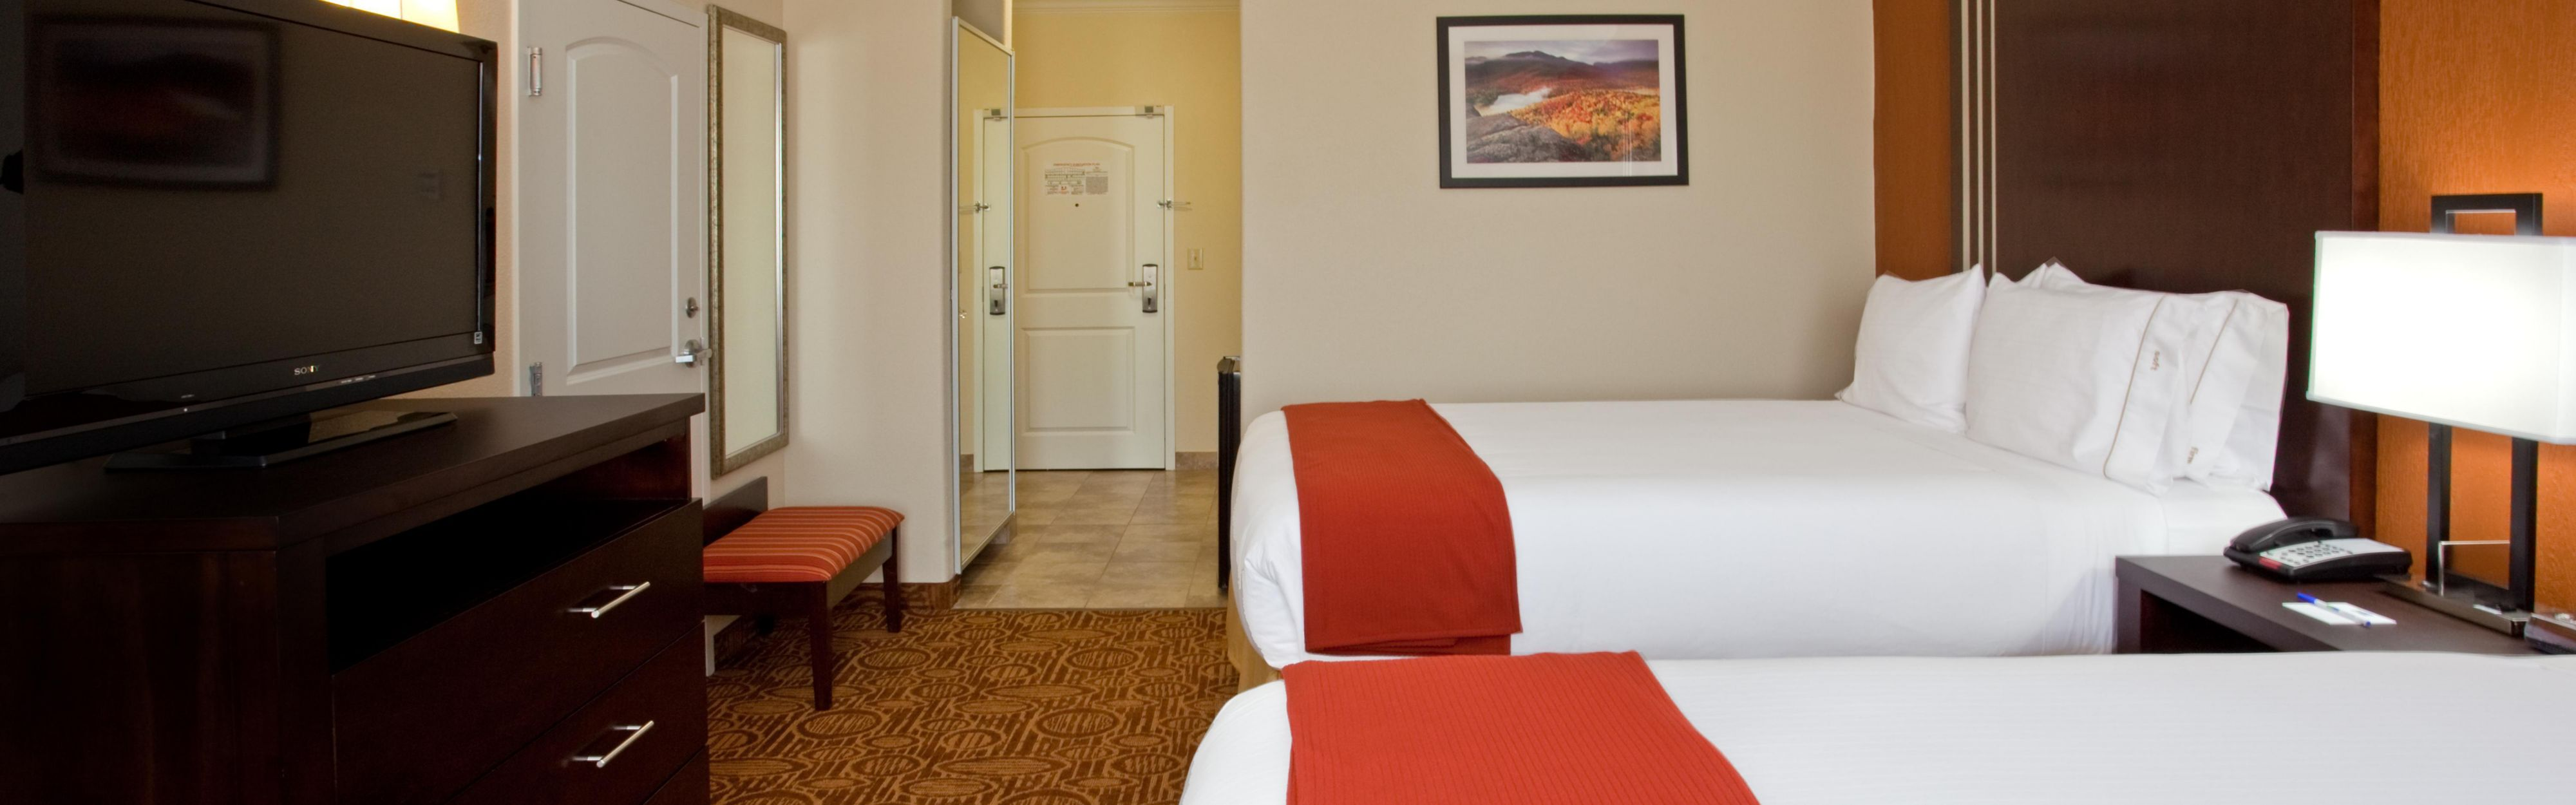 Holiday Inn Express & Suites Katy image 1